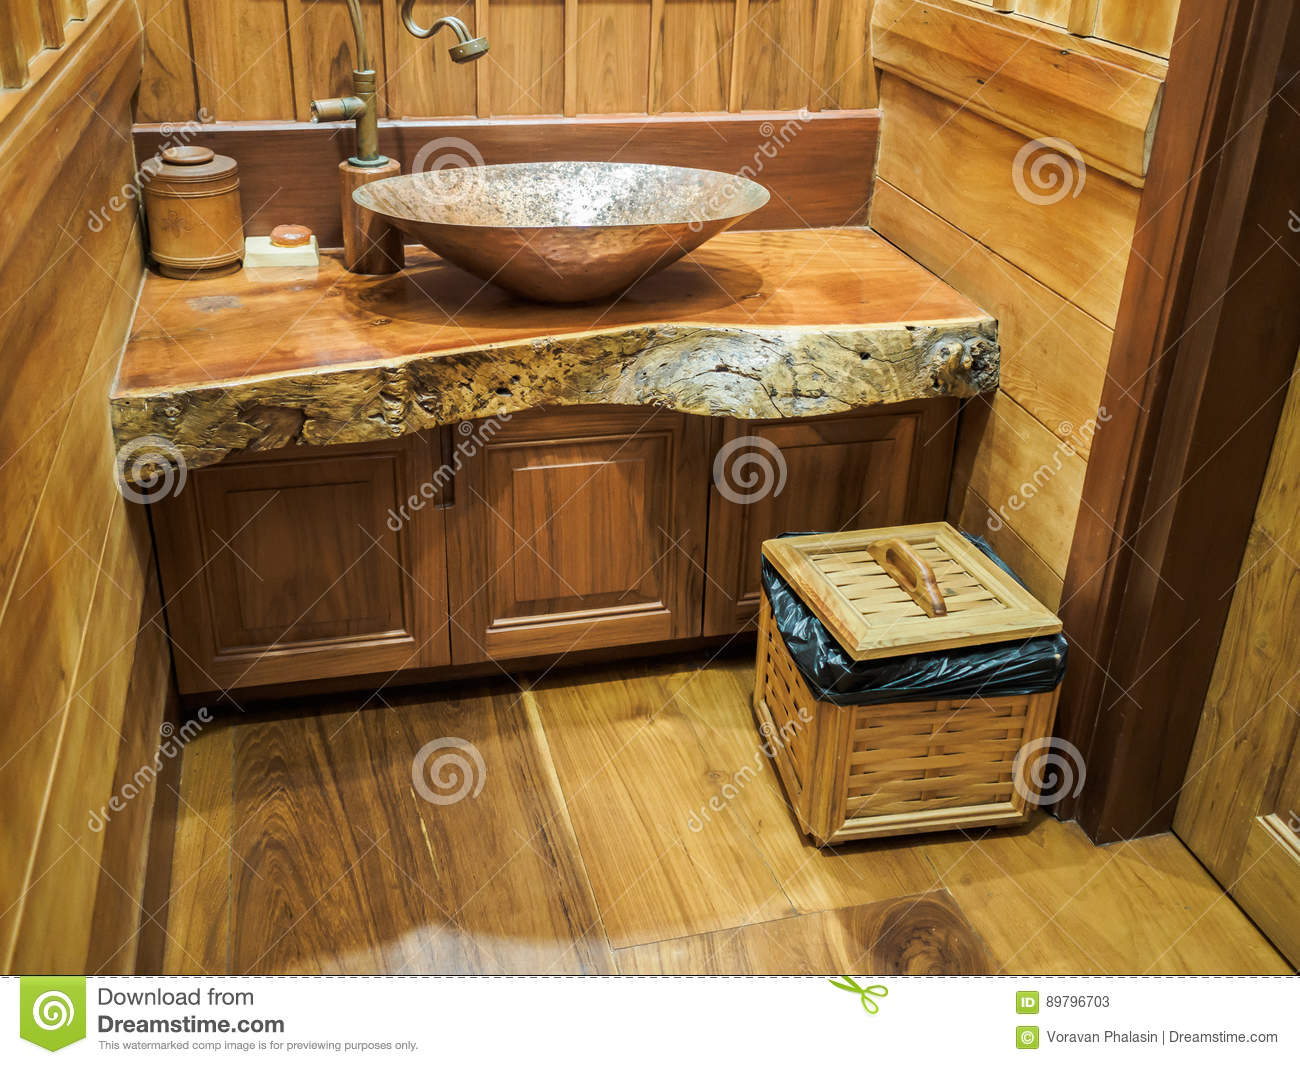 Vintage Brass Wash Basin In Wooden Bathroom Stock Image Image Of Toilet Retro 89796703